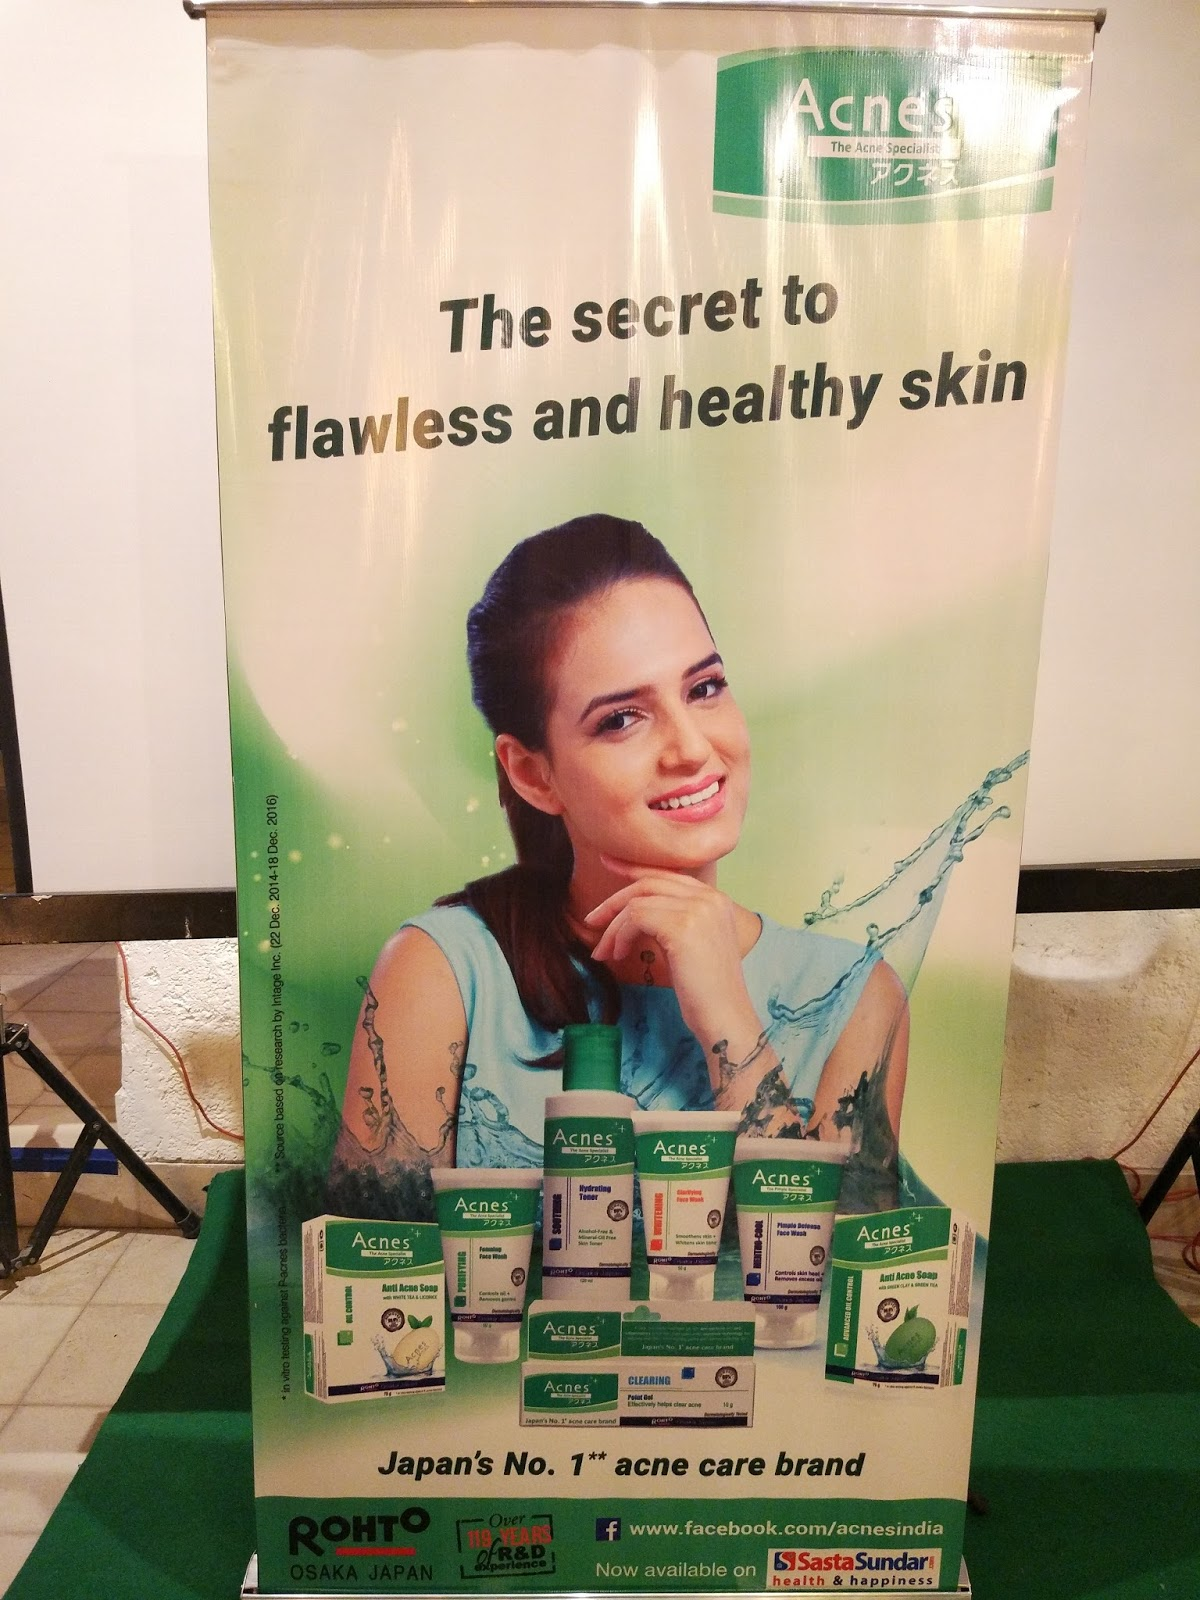 Rohto ACNES Mentho-Cool Pimple Defense Face Wash and Oil-Control Soap Launch